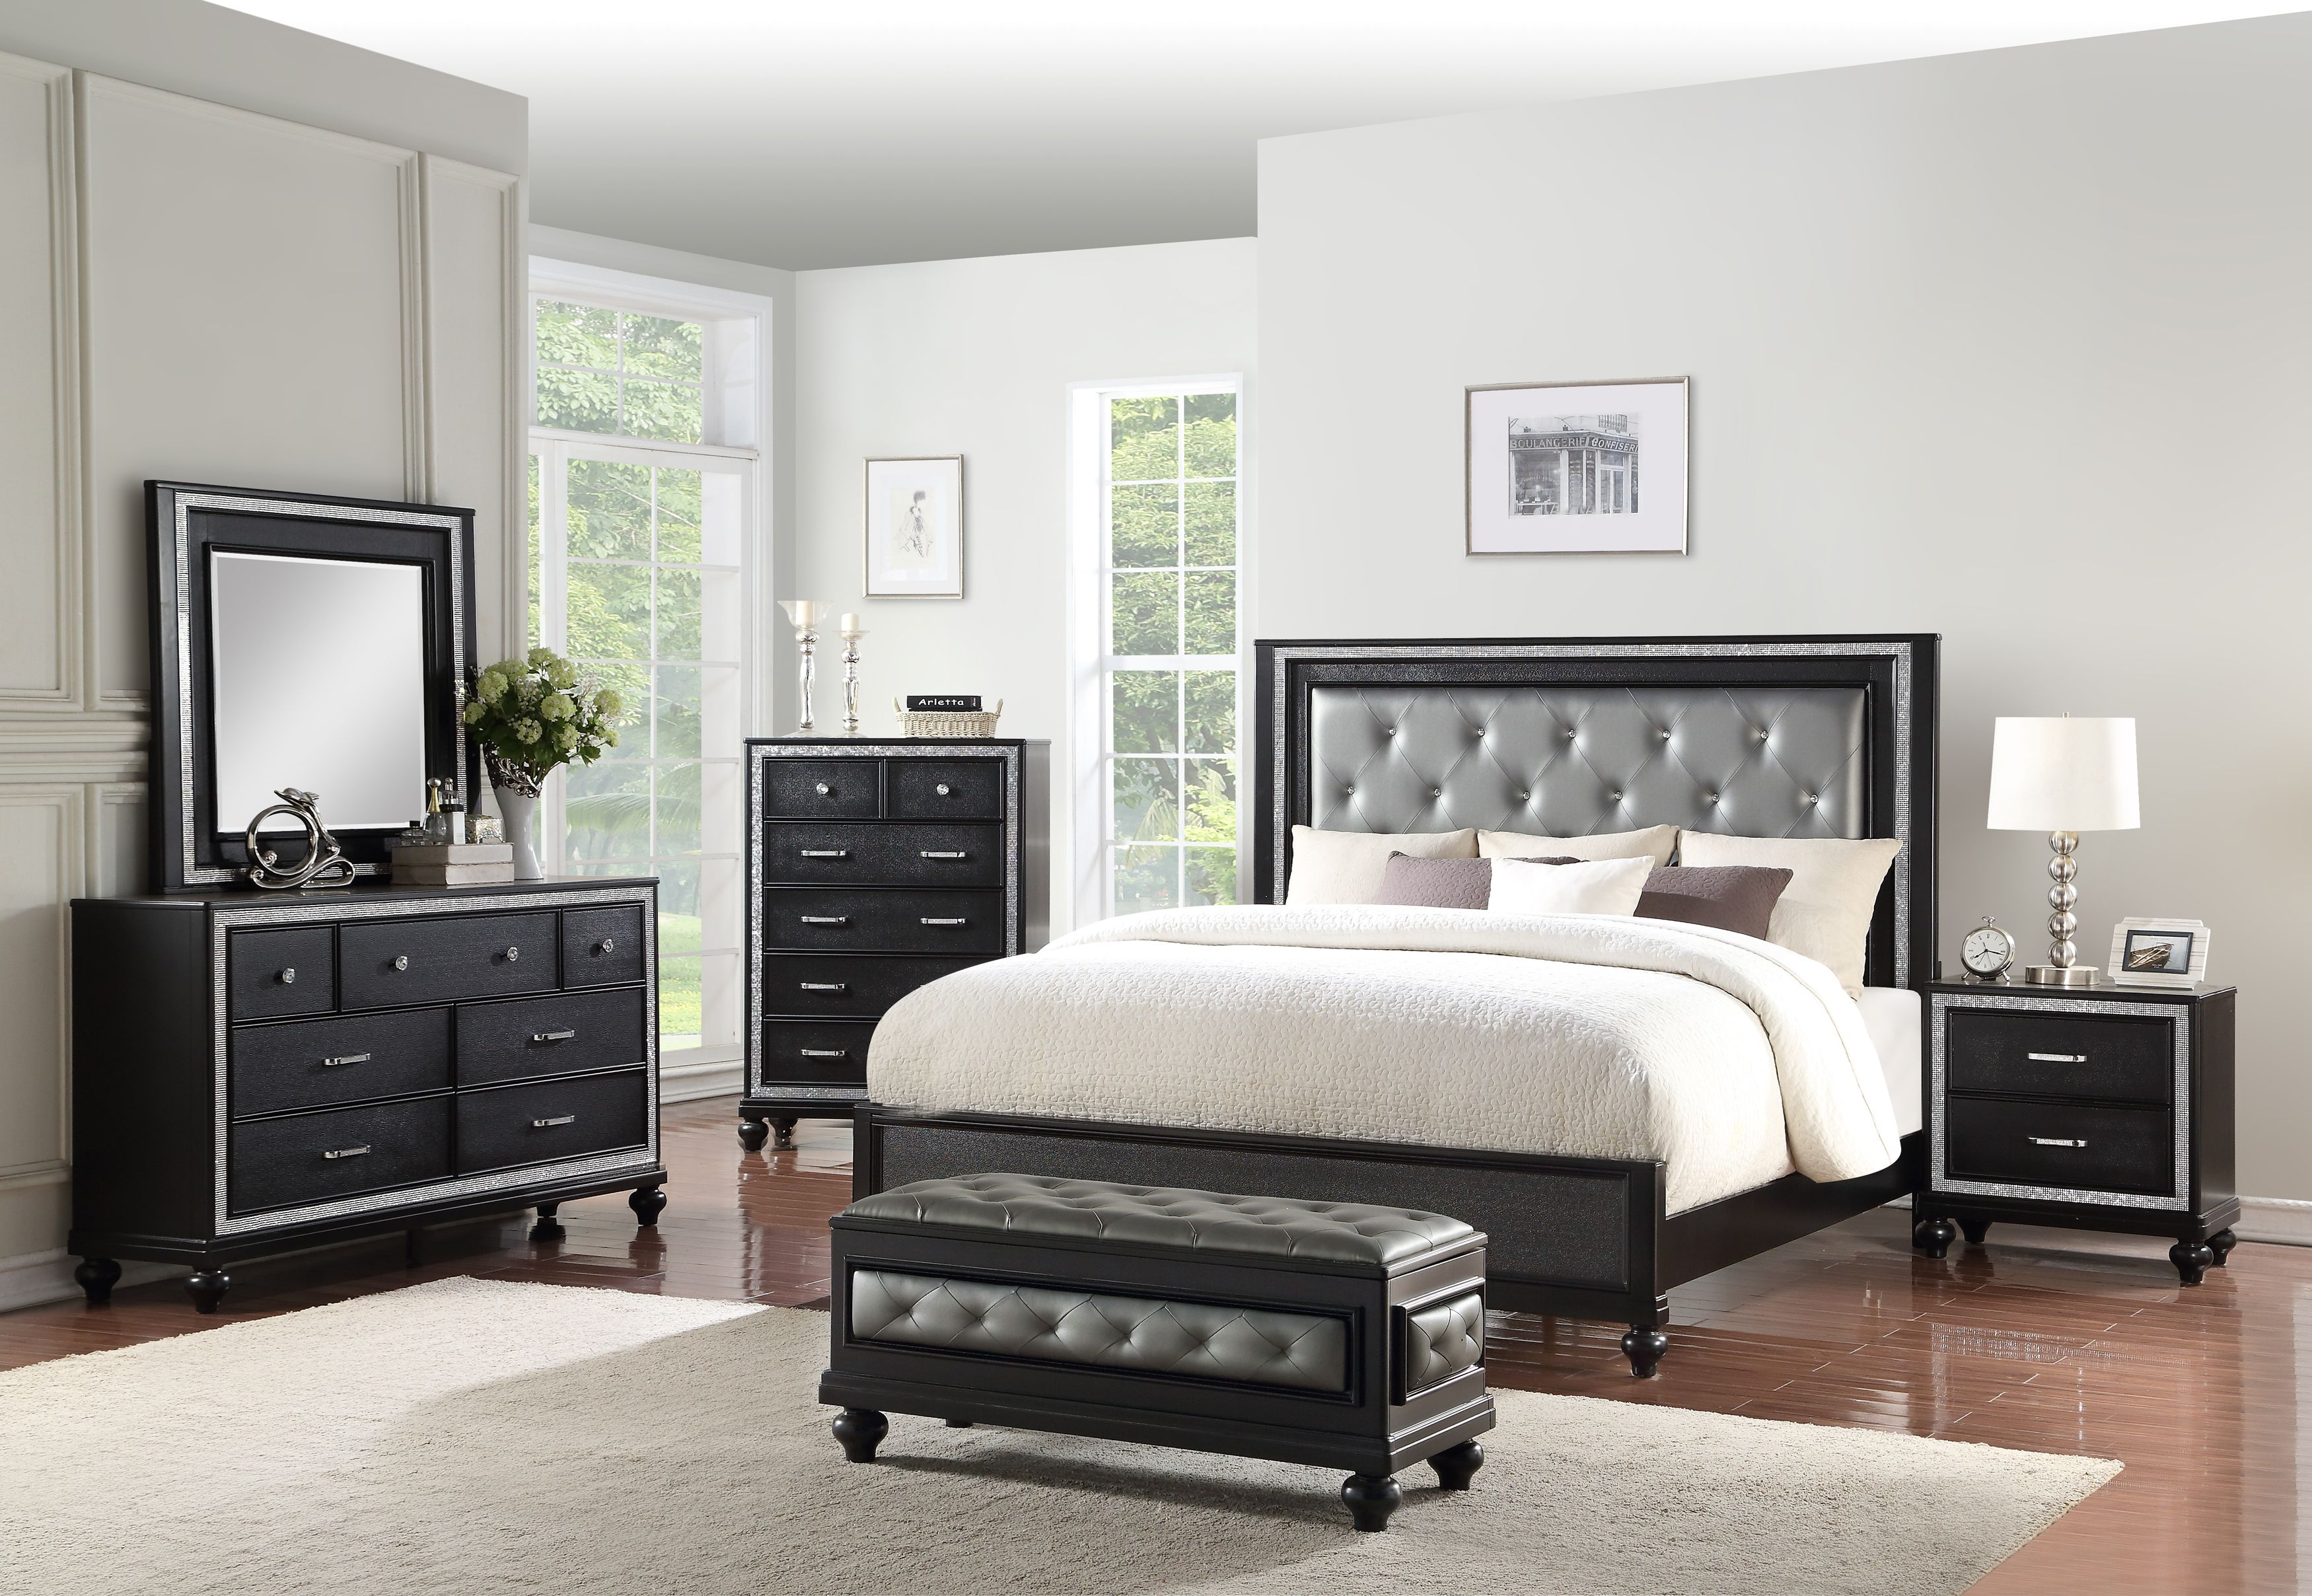 Pin By New Classic Furniture On Bedroom King Bedroom Sets Bedroom Sets Rooms To Go Bedroom